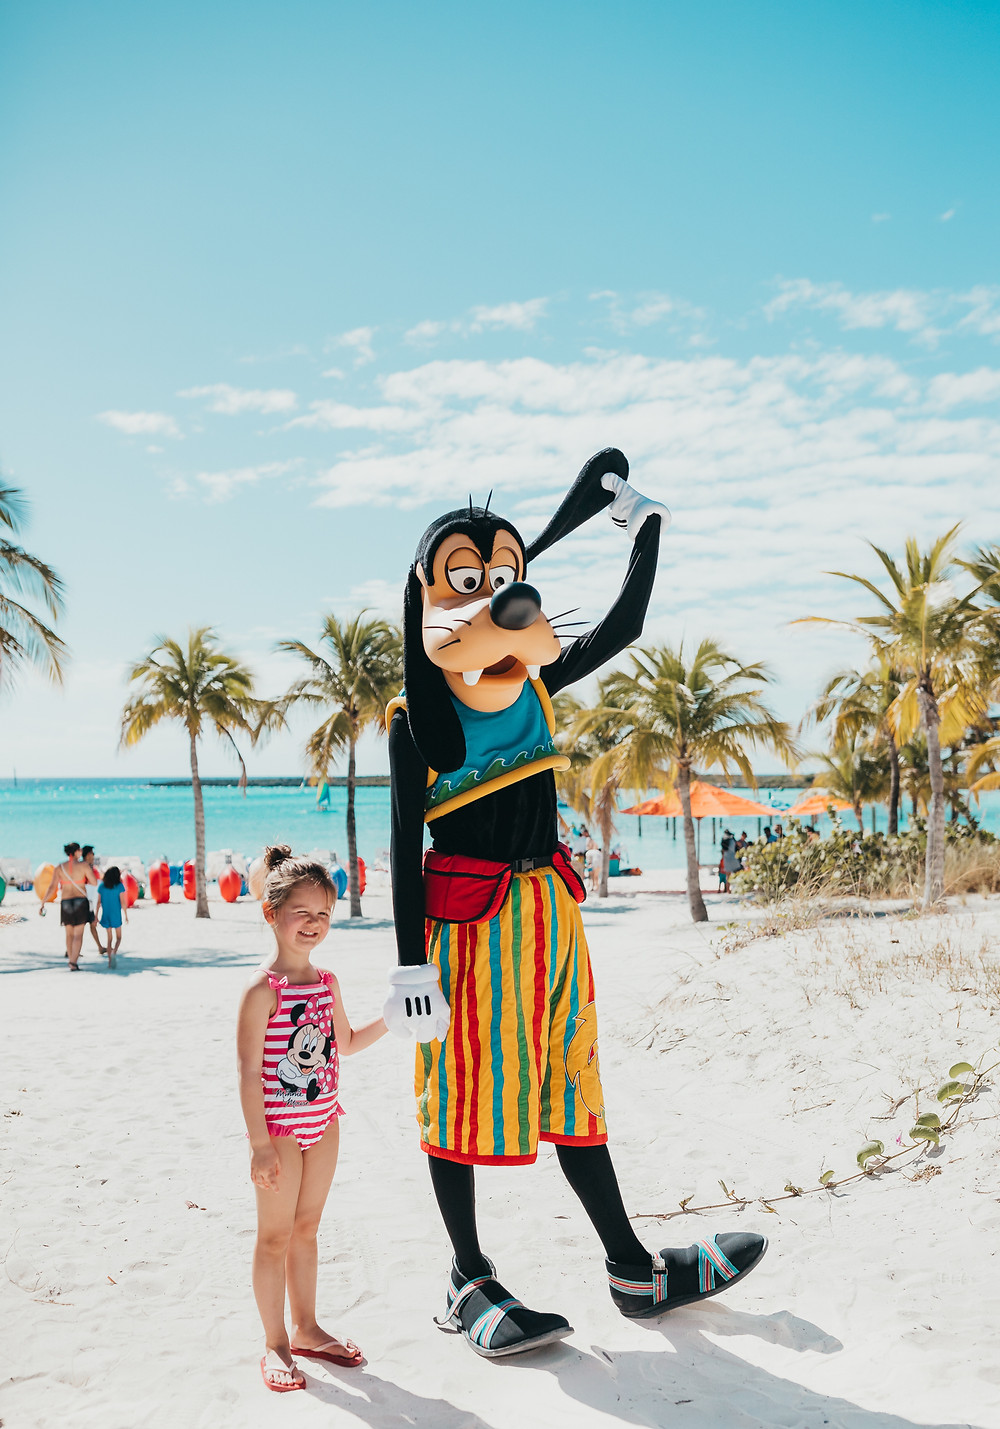 A little girl wearing a Minnie Mouse bathing suit standing with Goofy on the beach.